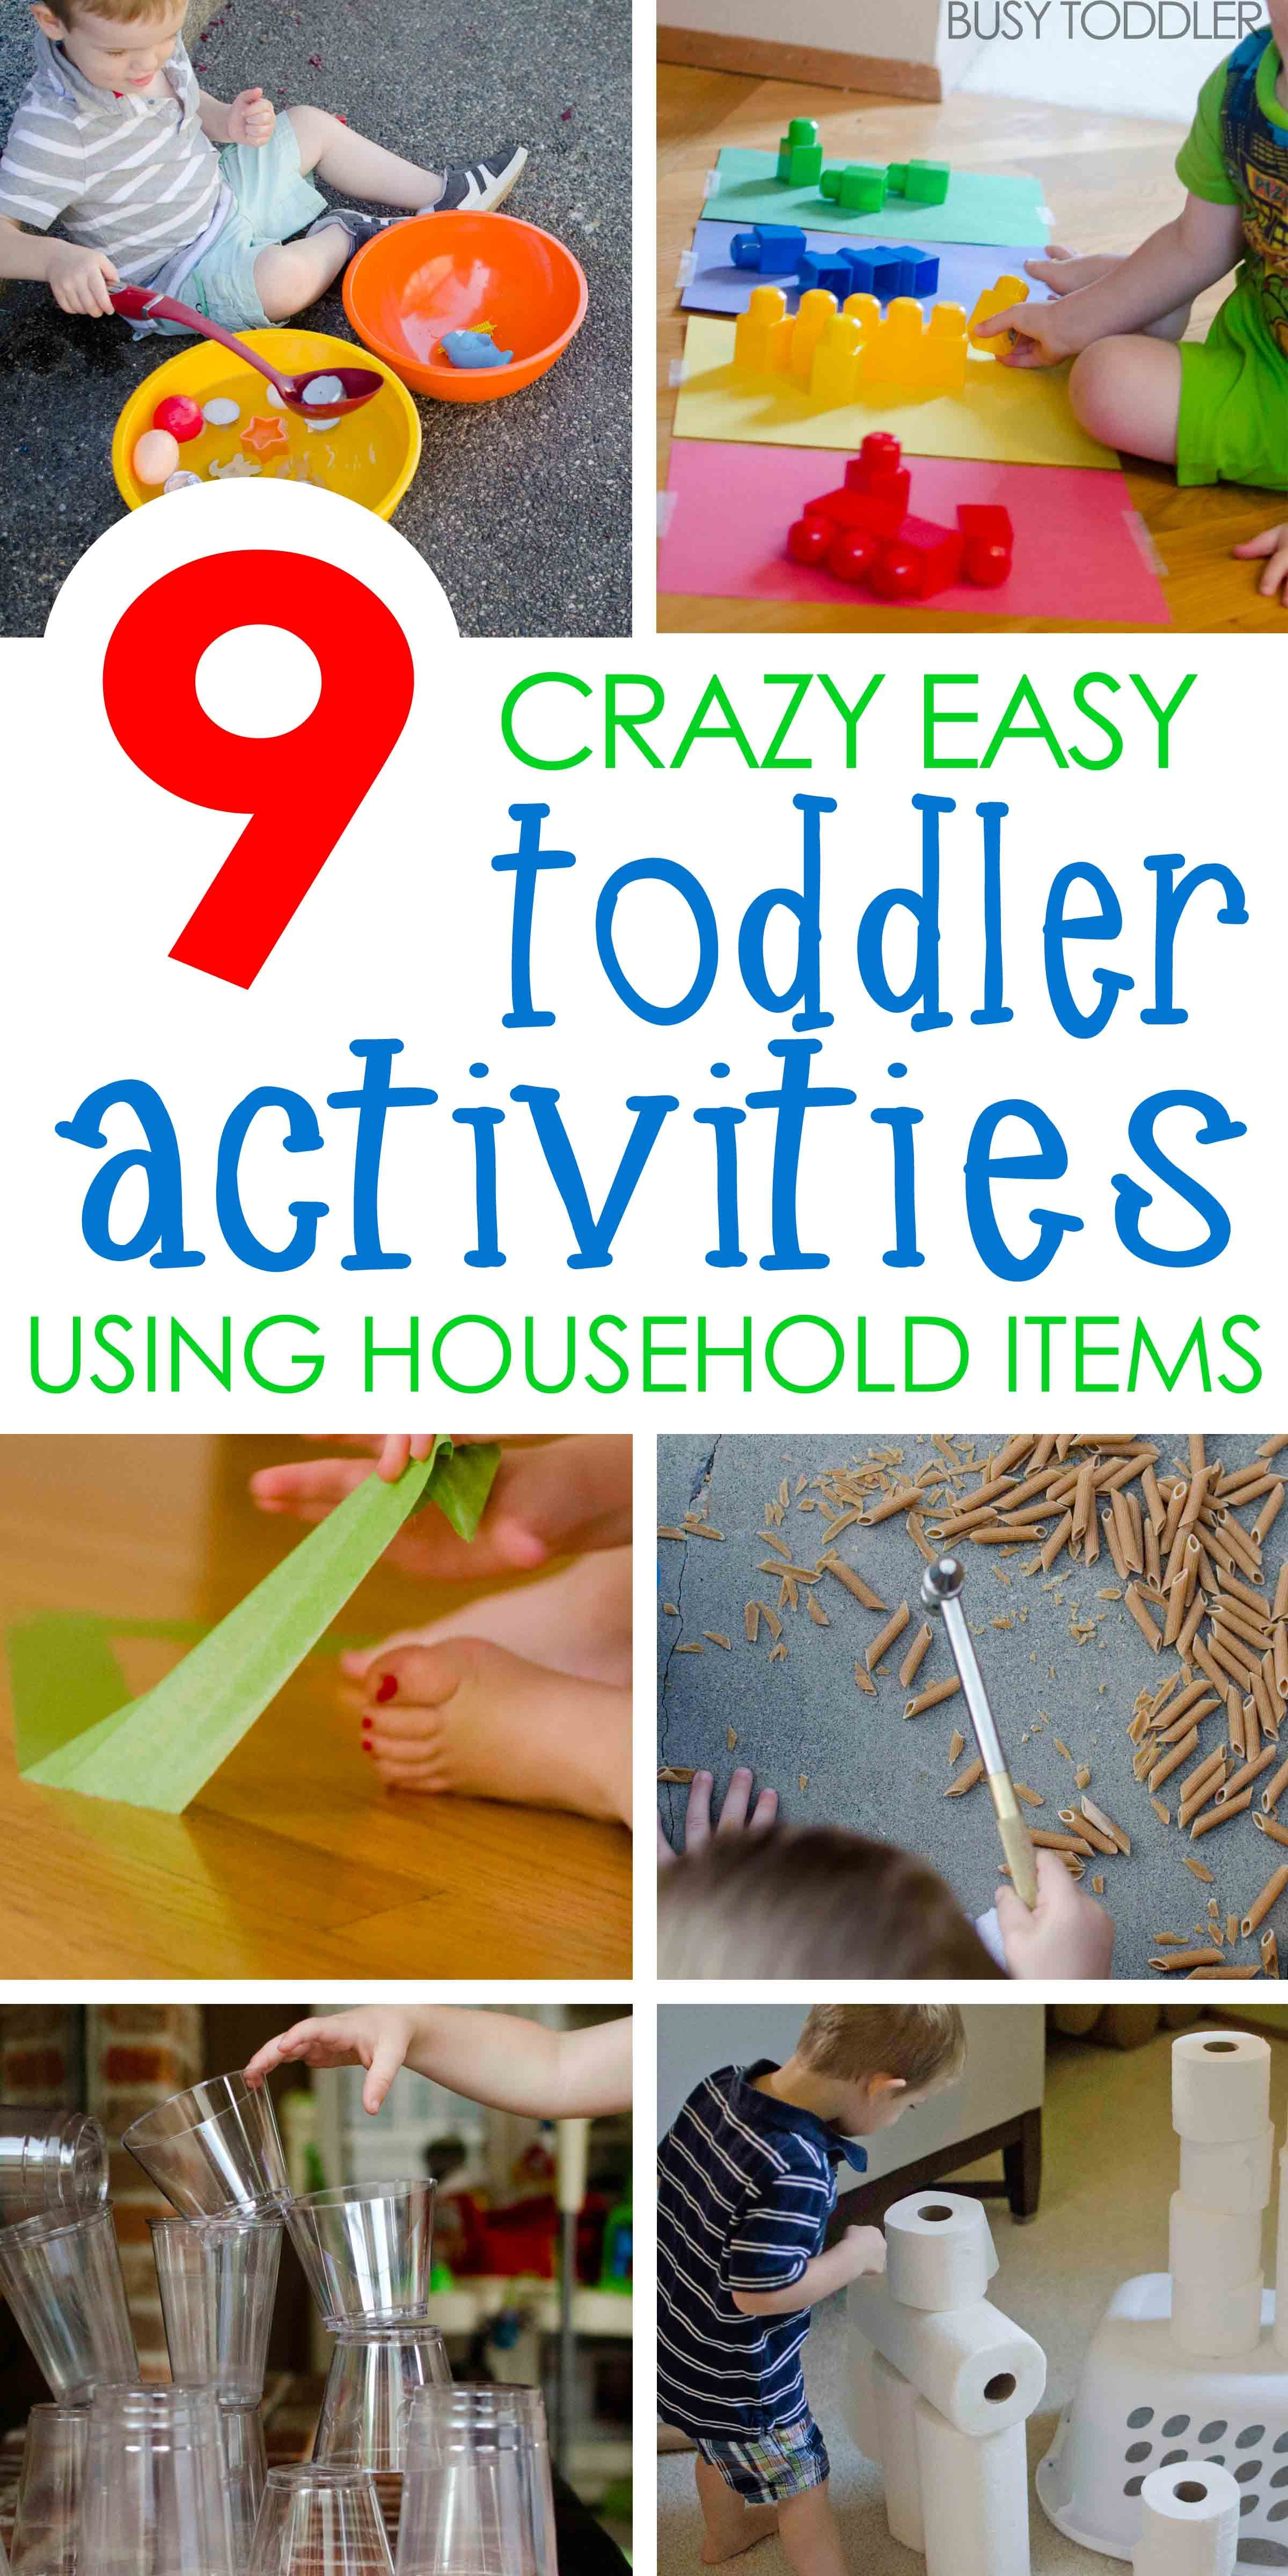 9 Quick & Easy Activities | Household items, Household and Activities